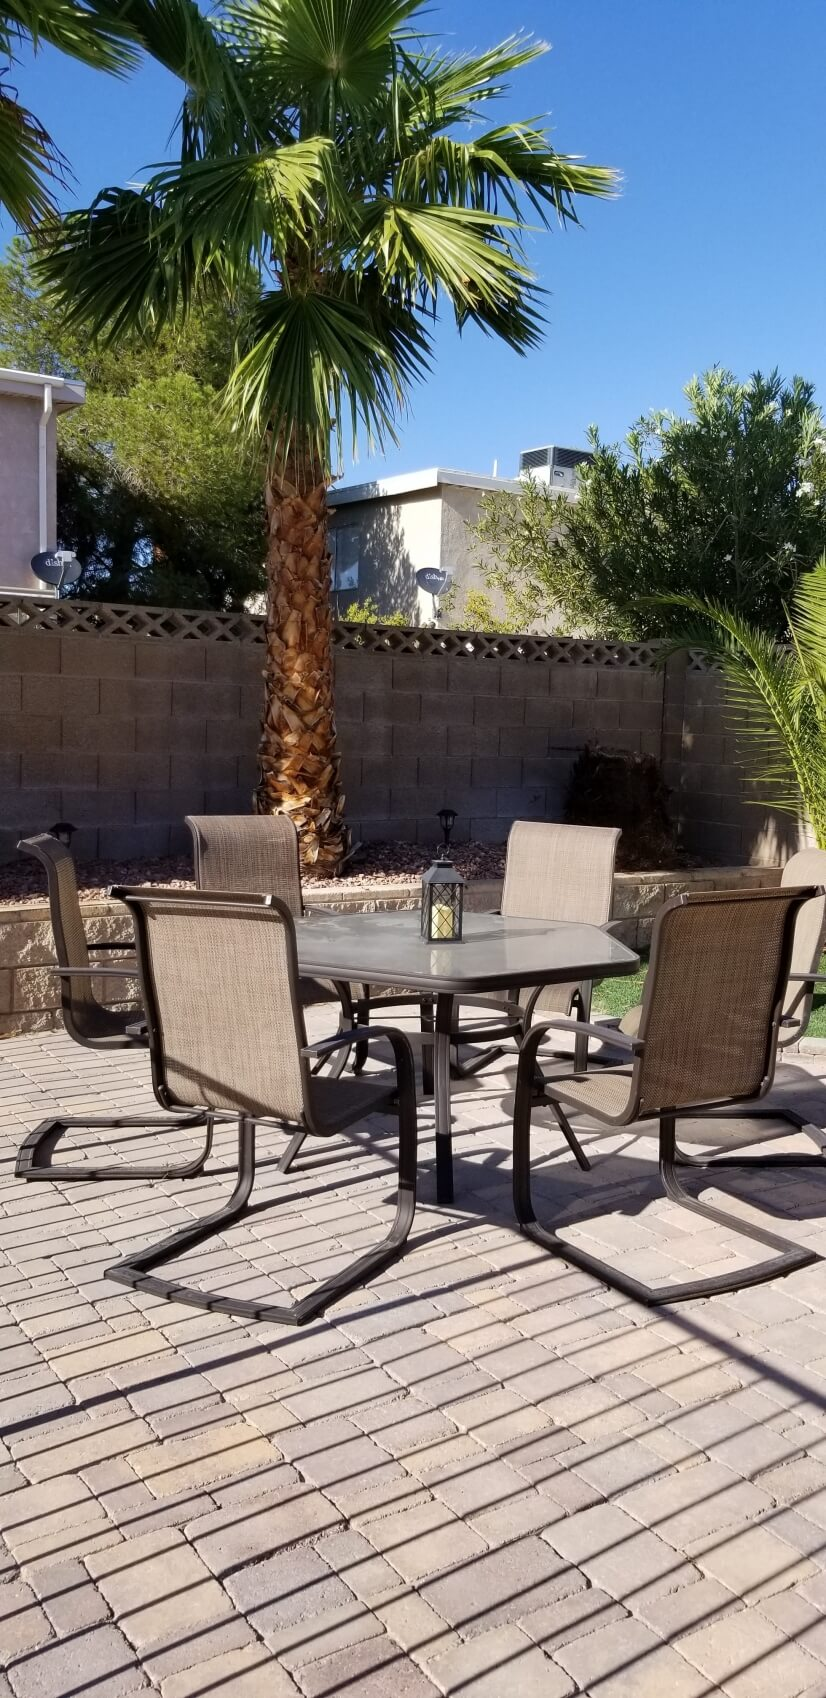 Patio seating in backyard...great bb'q time!